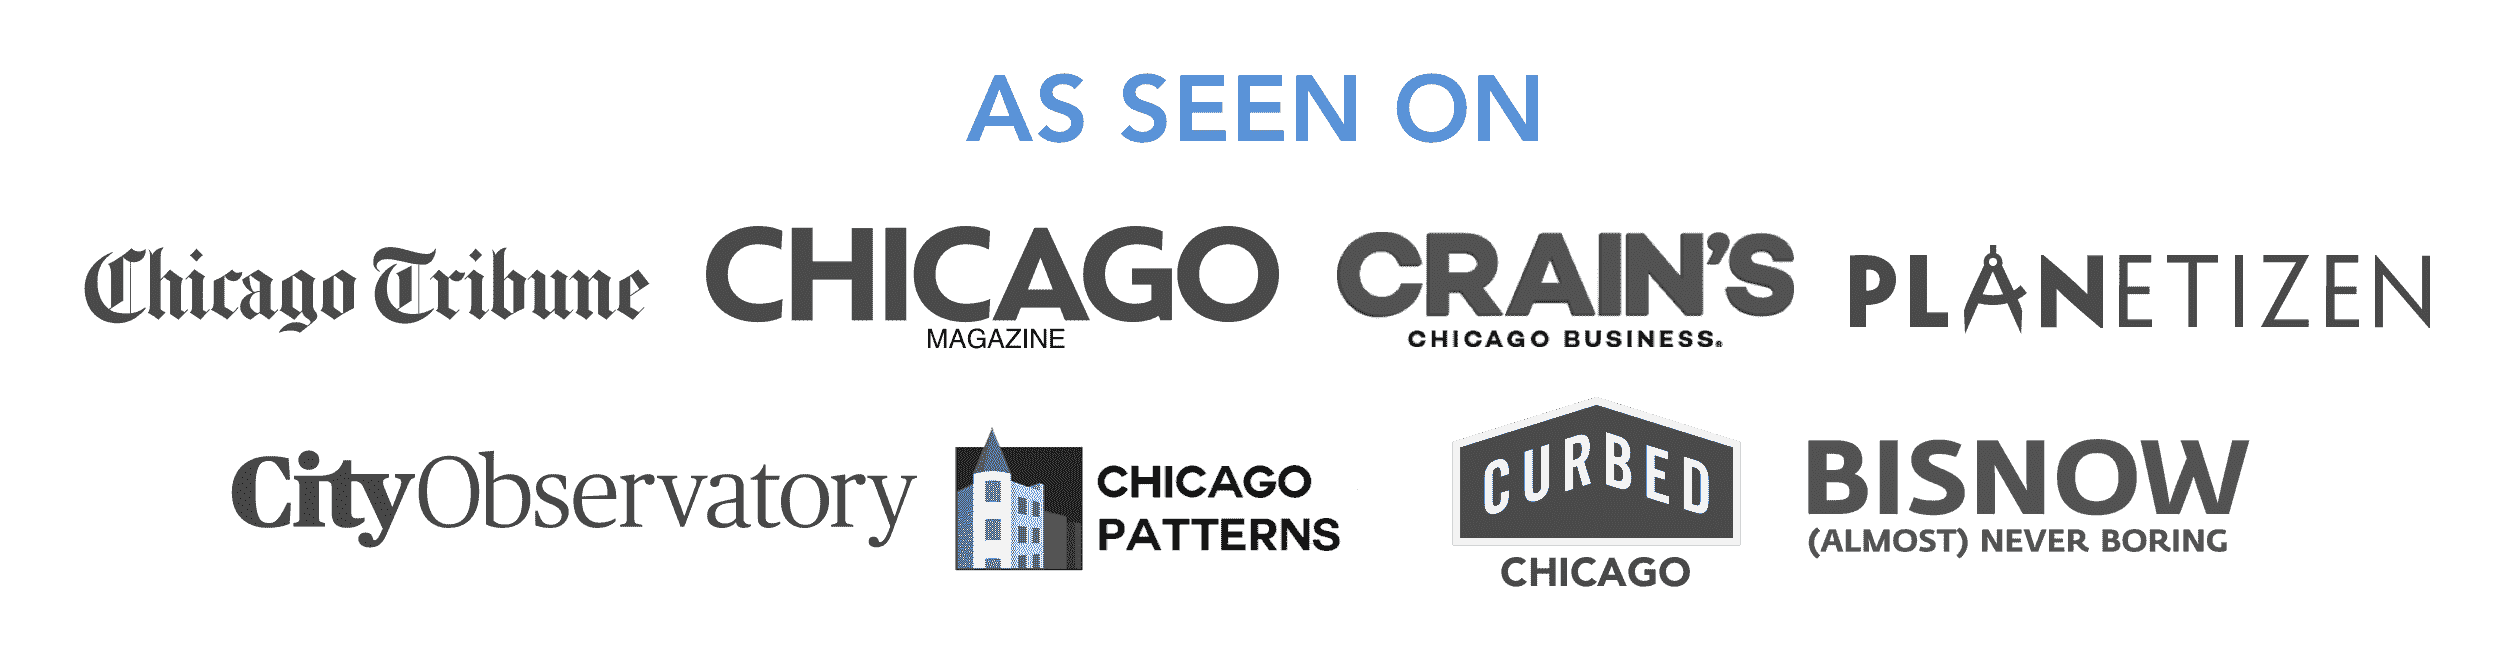 Chicago Cityscape has been seen on Curbed Chicago, Crain's Chicago Business, the Chicago Tribune, Chicago Magazine, and many other websites, as a source for insights and data analysis about Chicago properties that can't be found anywhere else.